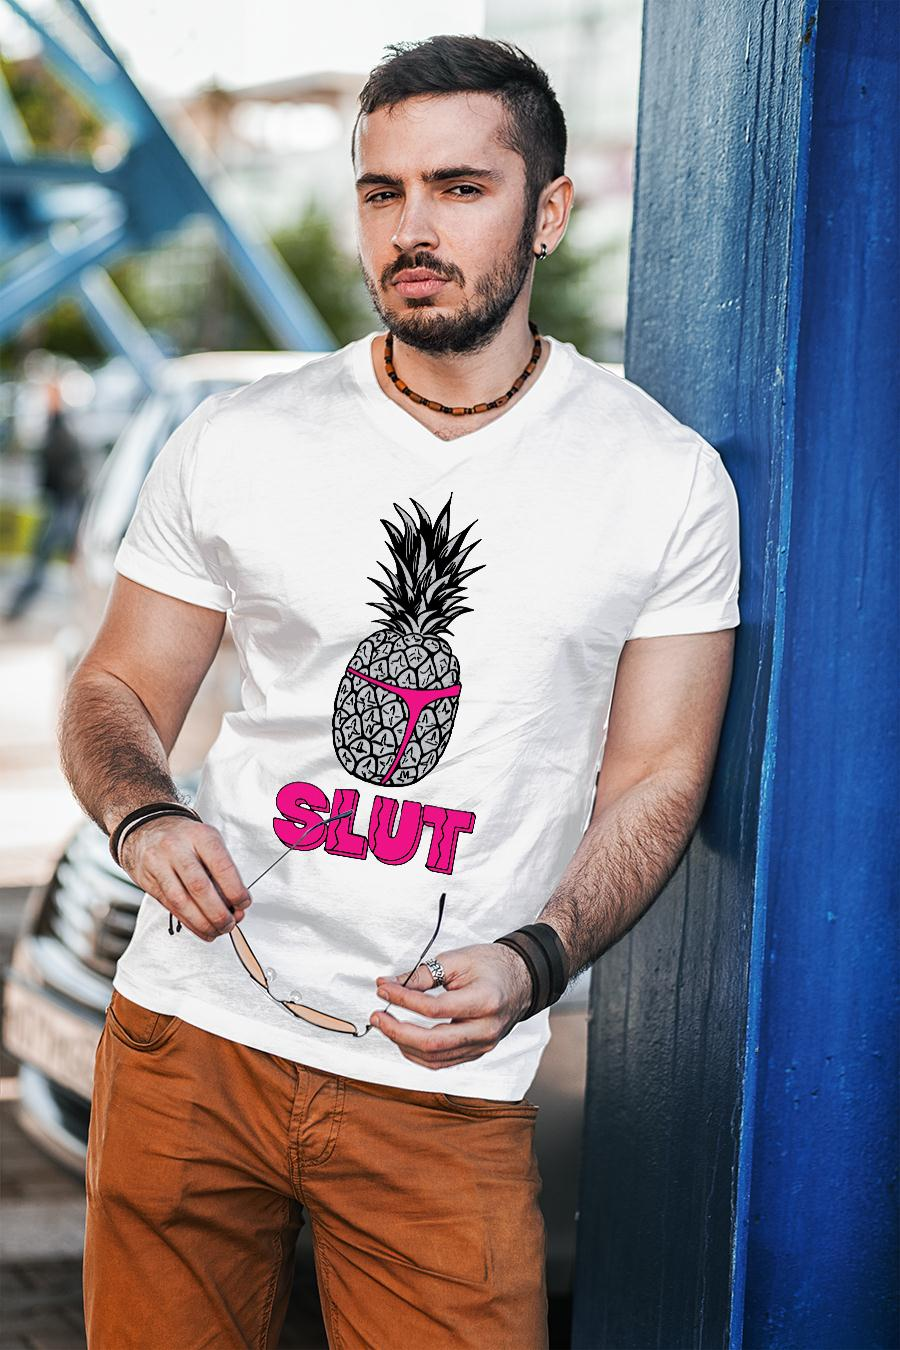 Pineapple Slut Sarcastic Novelty Funny Brooklyn Cotton Shirt unisex